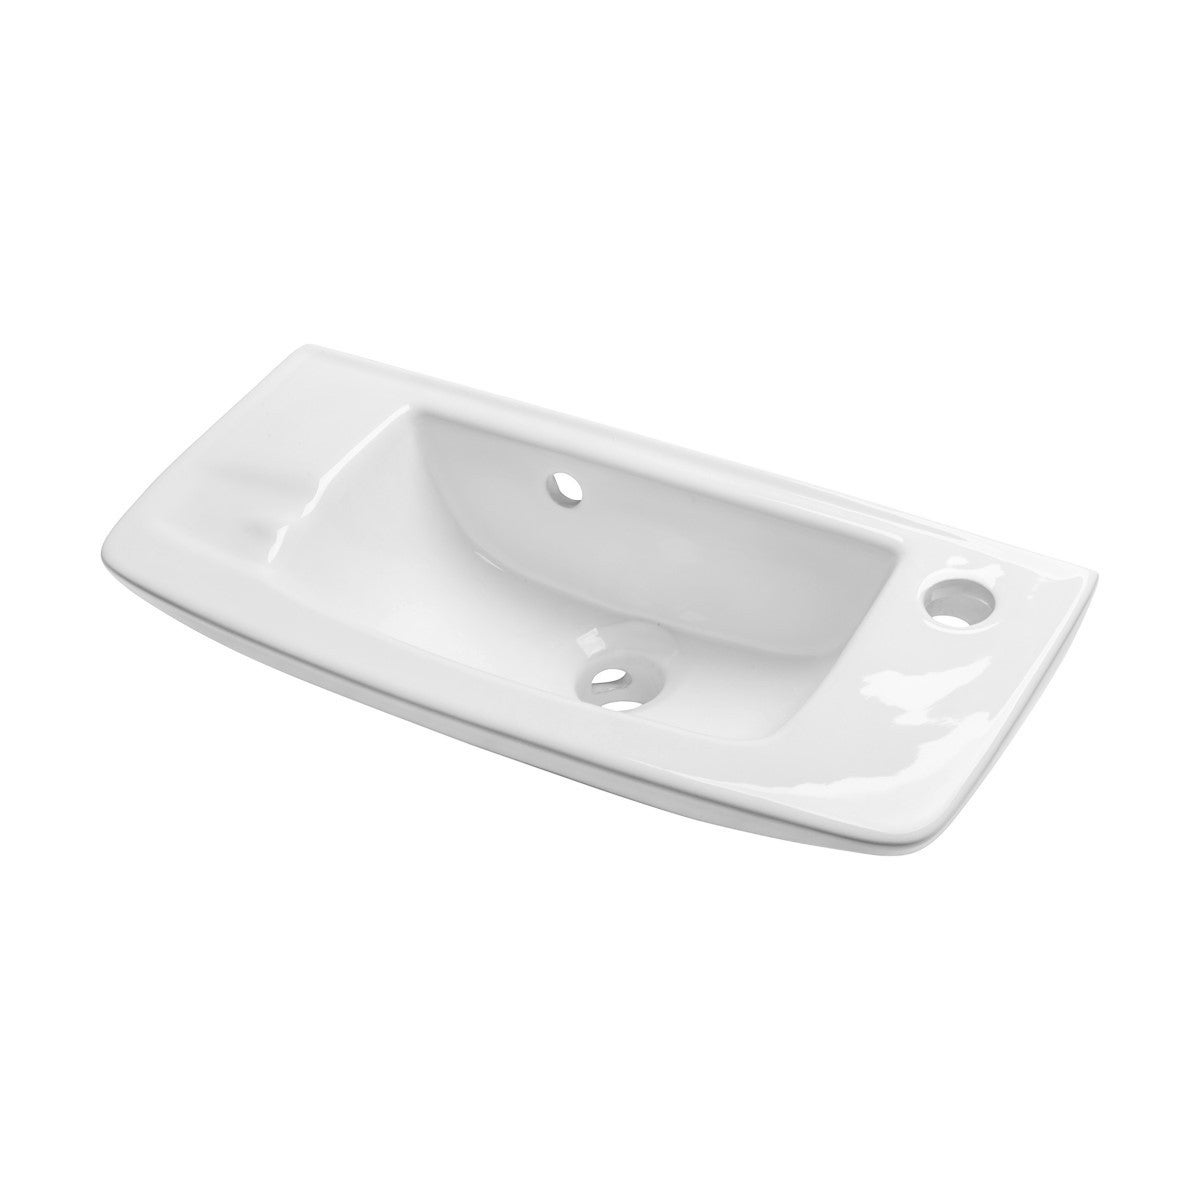 Small White Wall Mount Bathroom Sink